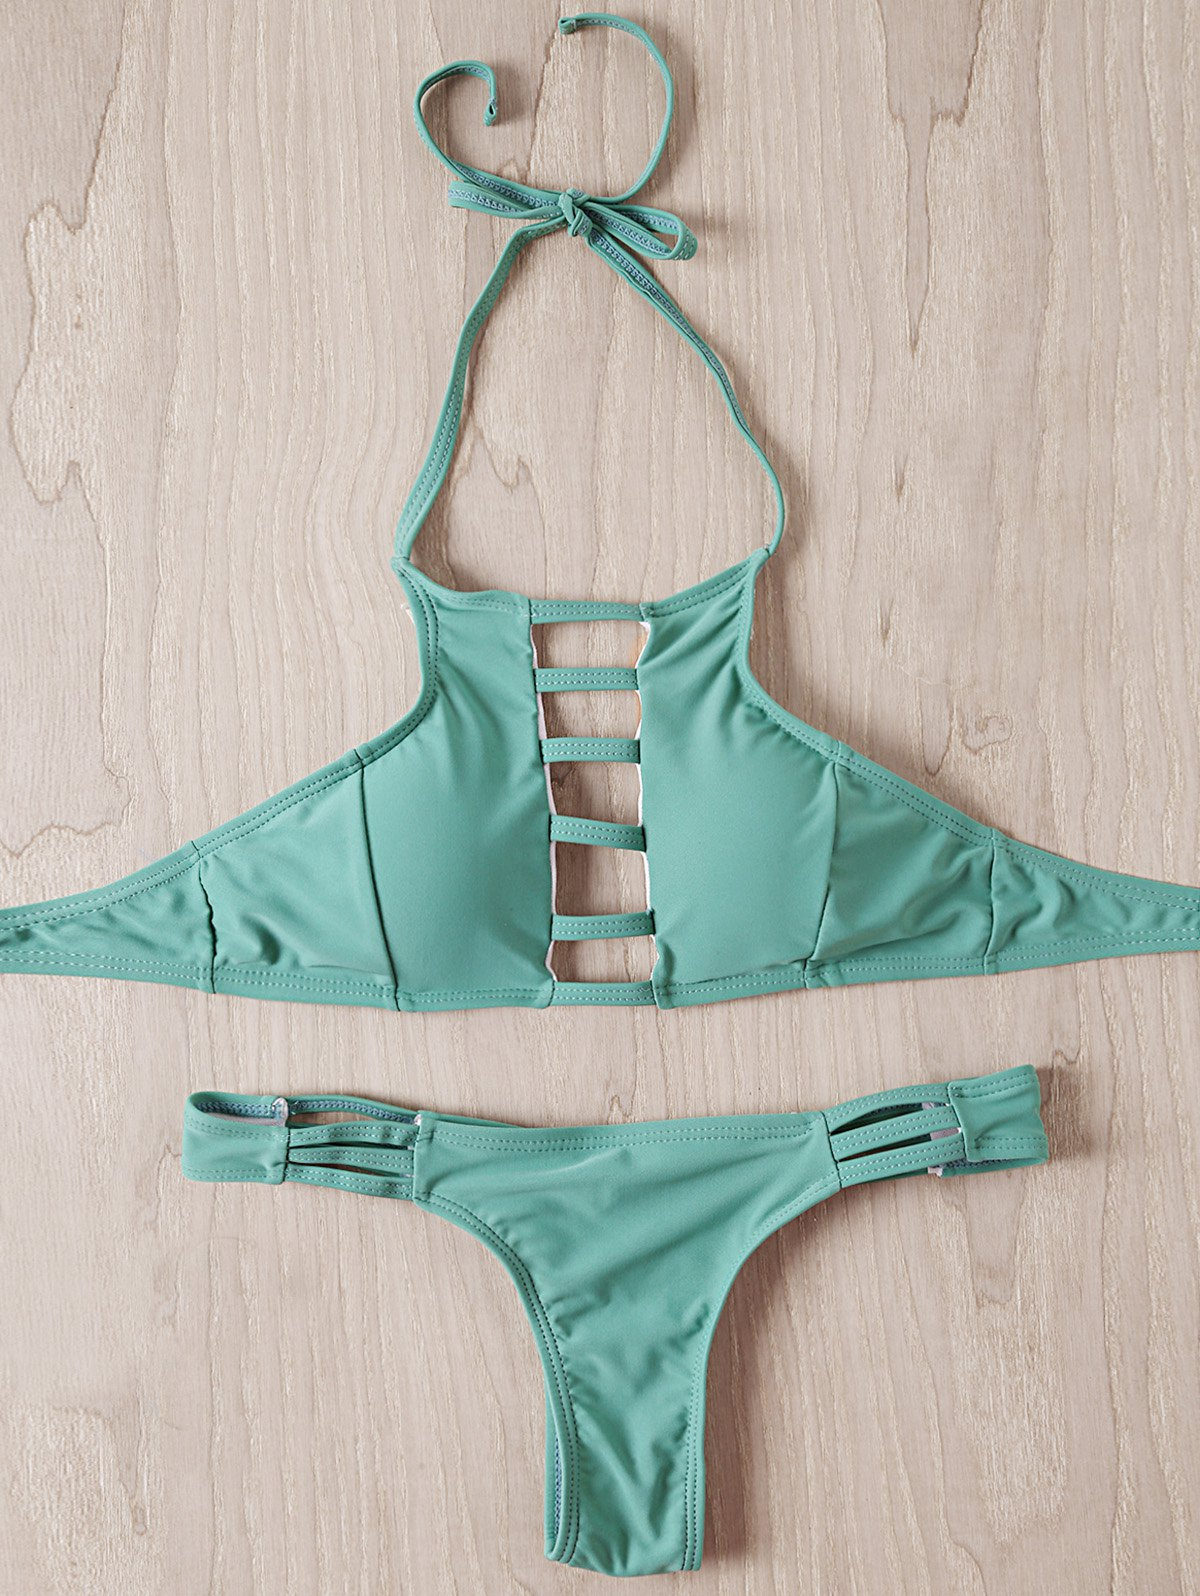 Stylish Women's Halter Strappy Hollow Out Bikini Set - MINT GREEN S